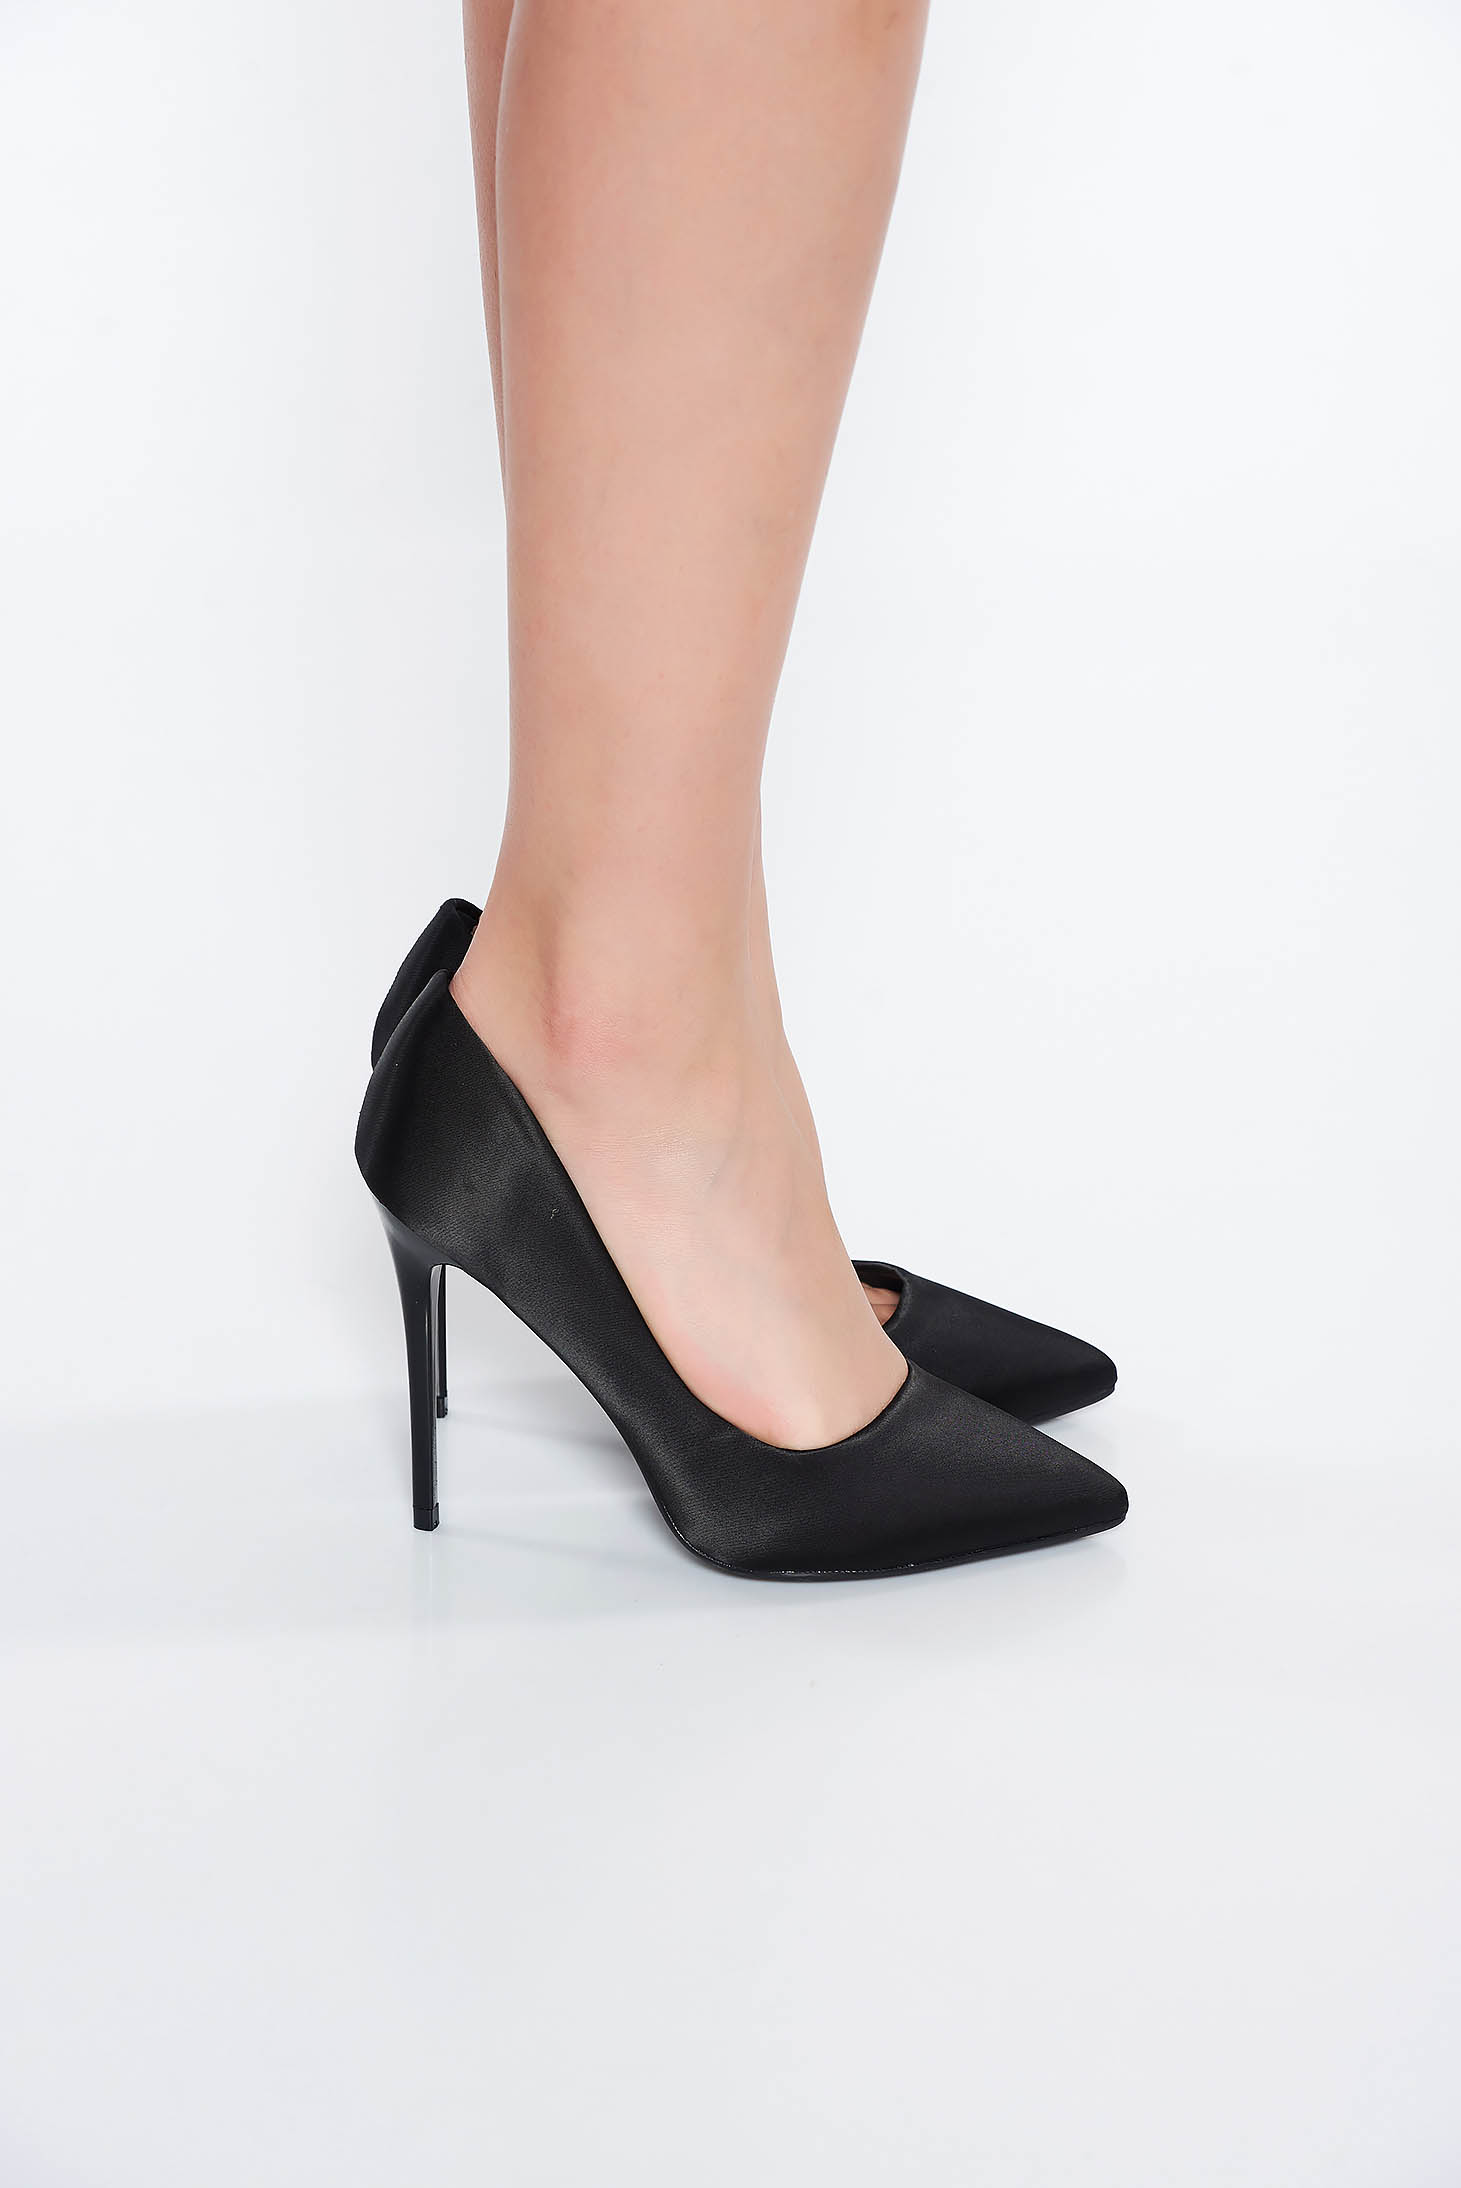 Black elegant with high heels shoes slightly pointed toe tip from satin fabric texture